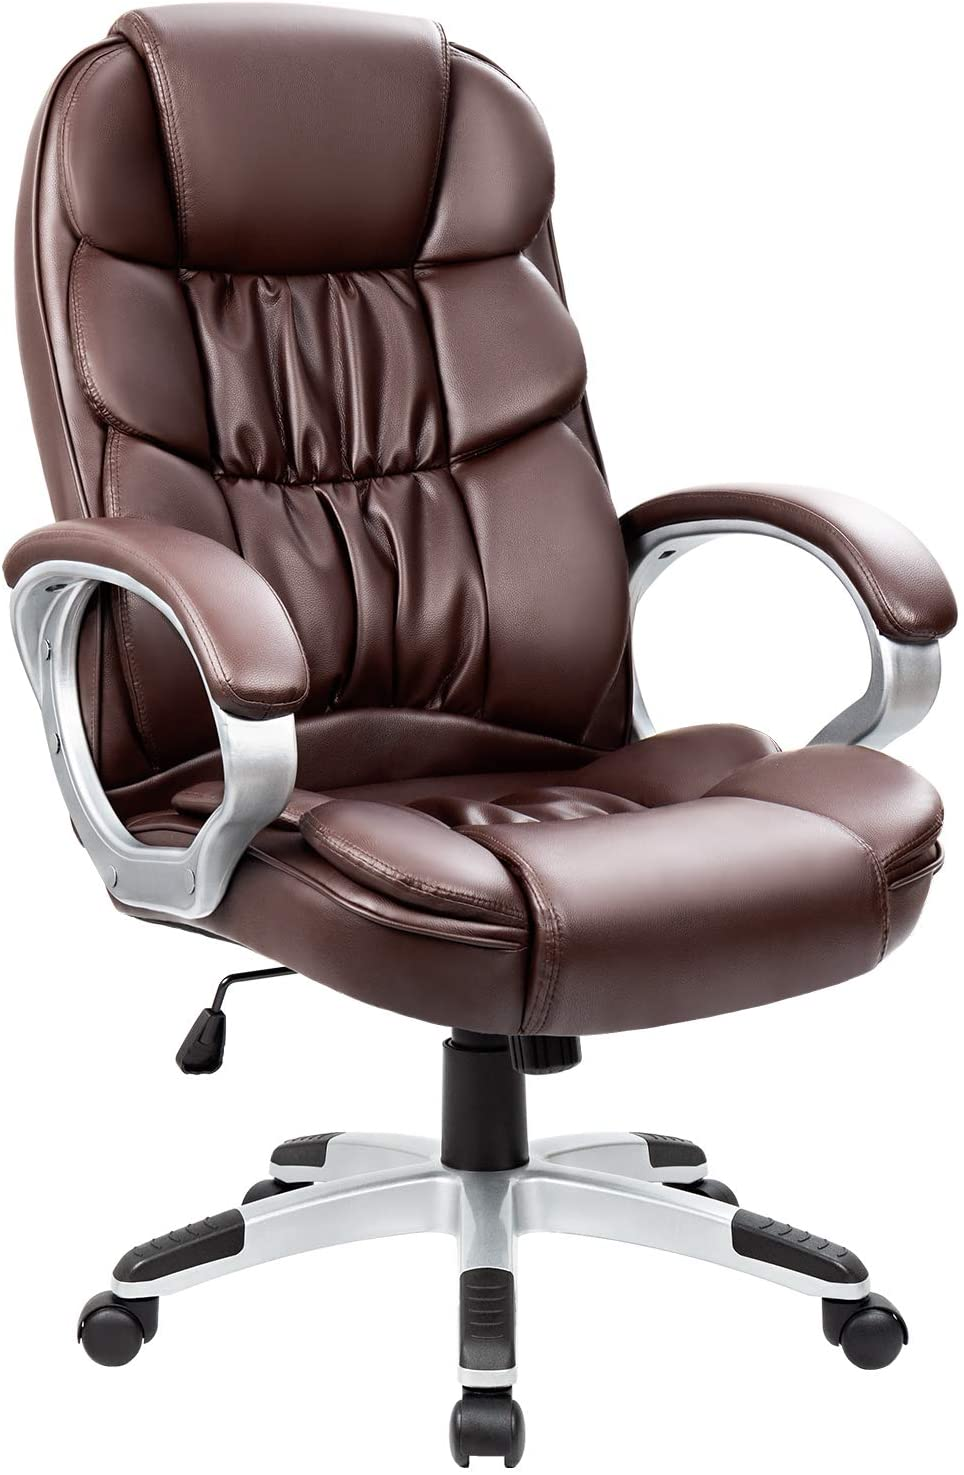 Homall Office Chair High Back Computer Chair Ergonomic Desk Chair, PU Leather Adjustable Height Modern Executive Swivel Task Chair with Padded Armrests and Lumbar Support (Brown)